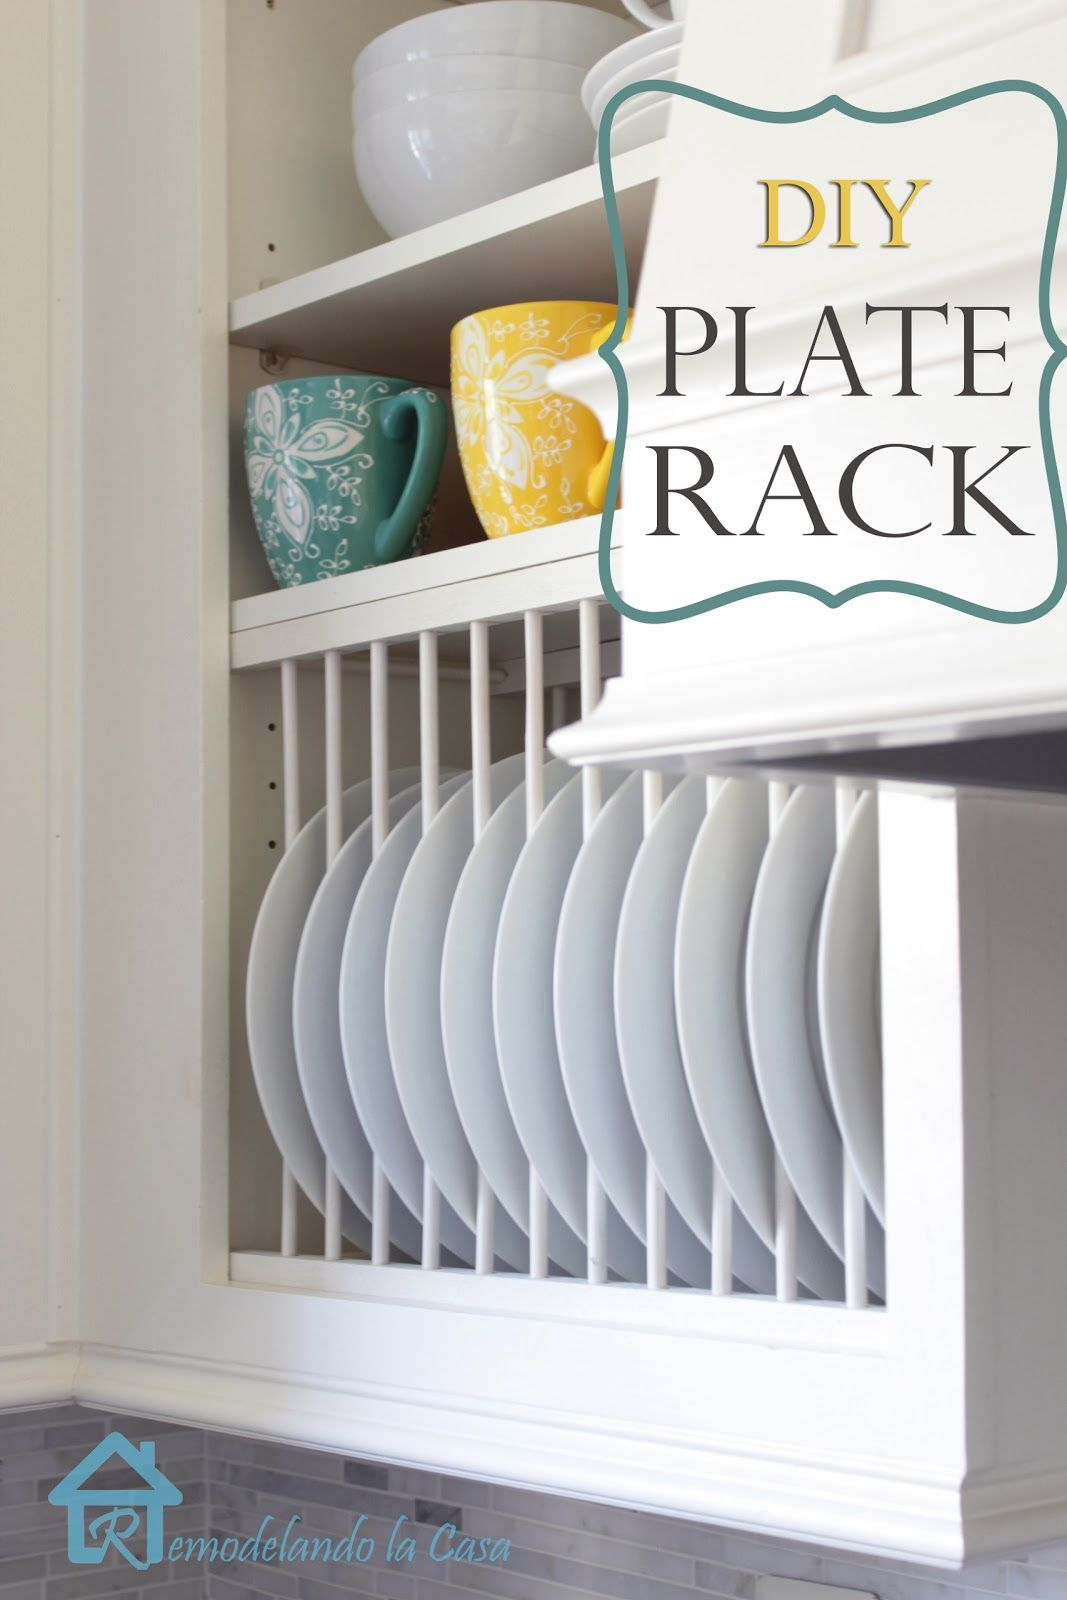 Etonnant How To Build A Plate Rack Inside A Cabinet   Step By Step Tutorial